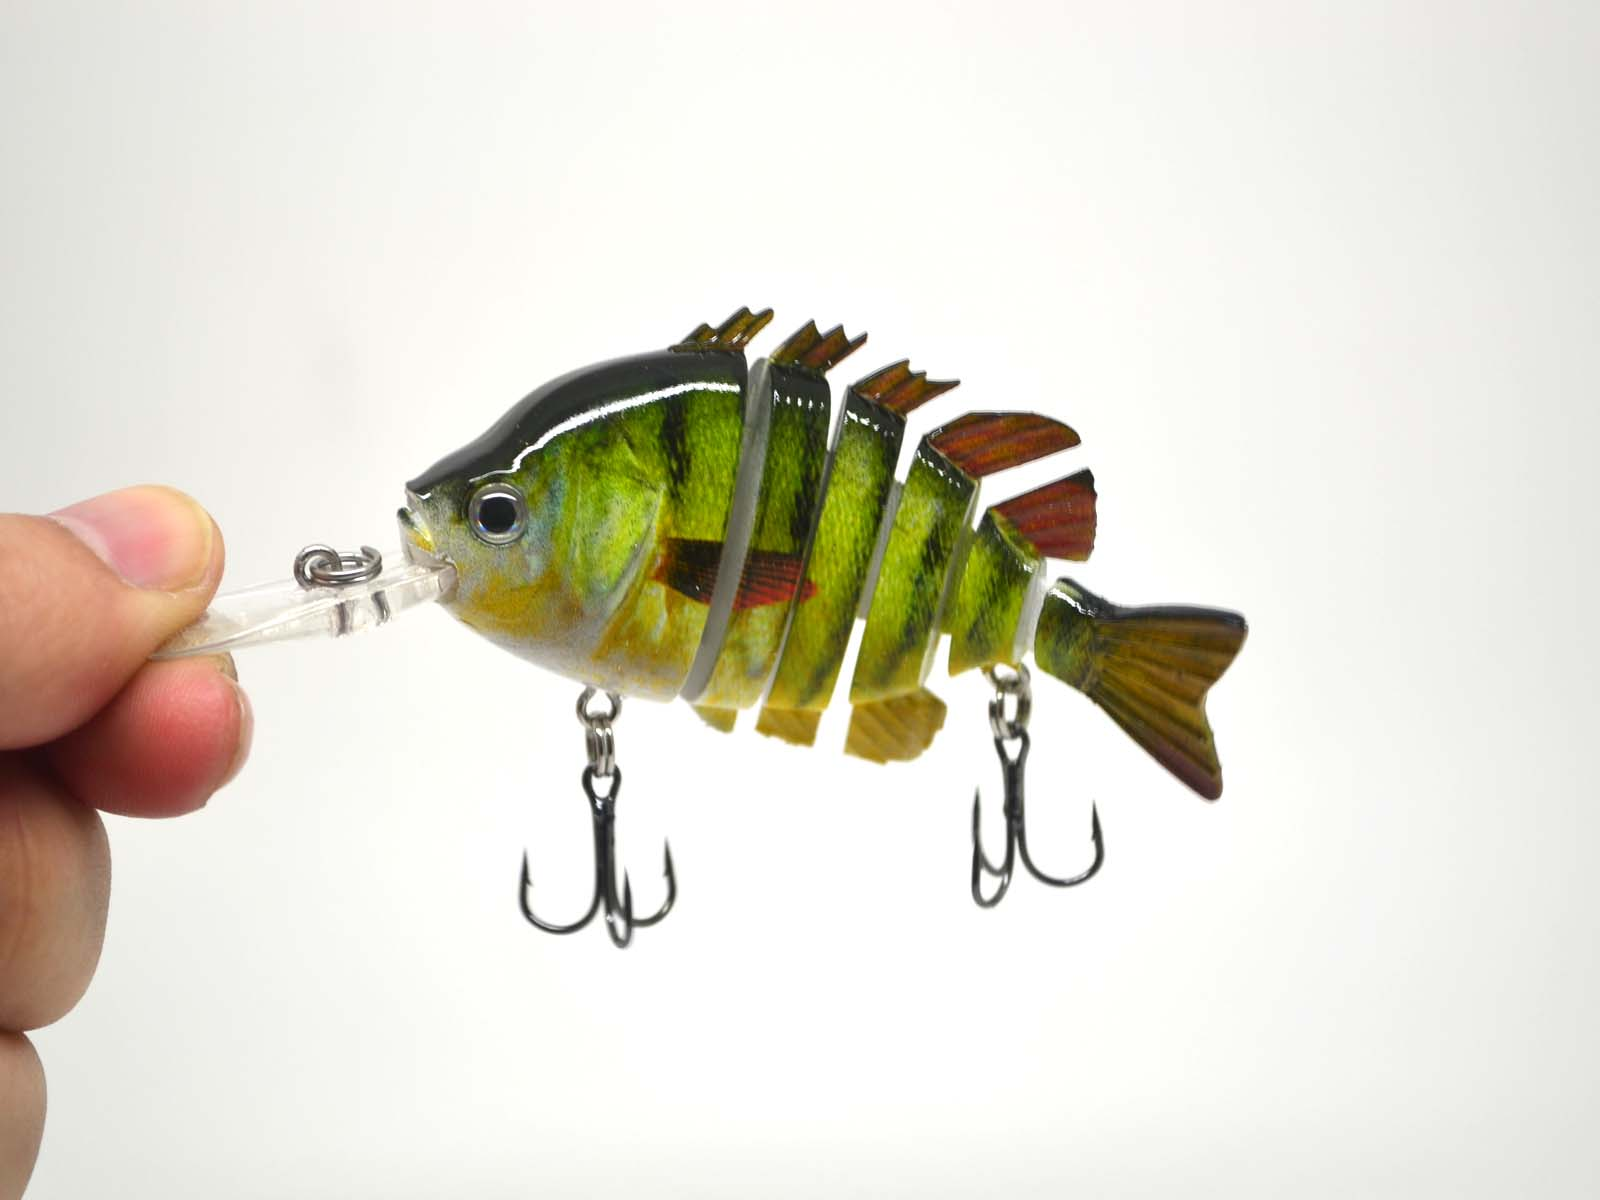 Largemouth bass pike perch fishing bait swimbait lure life for Perch fishing lures